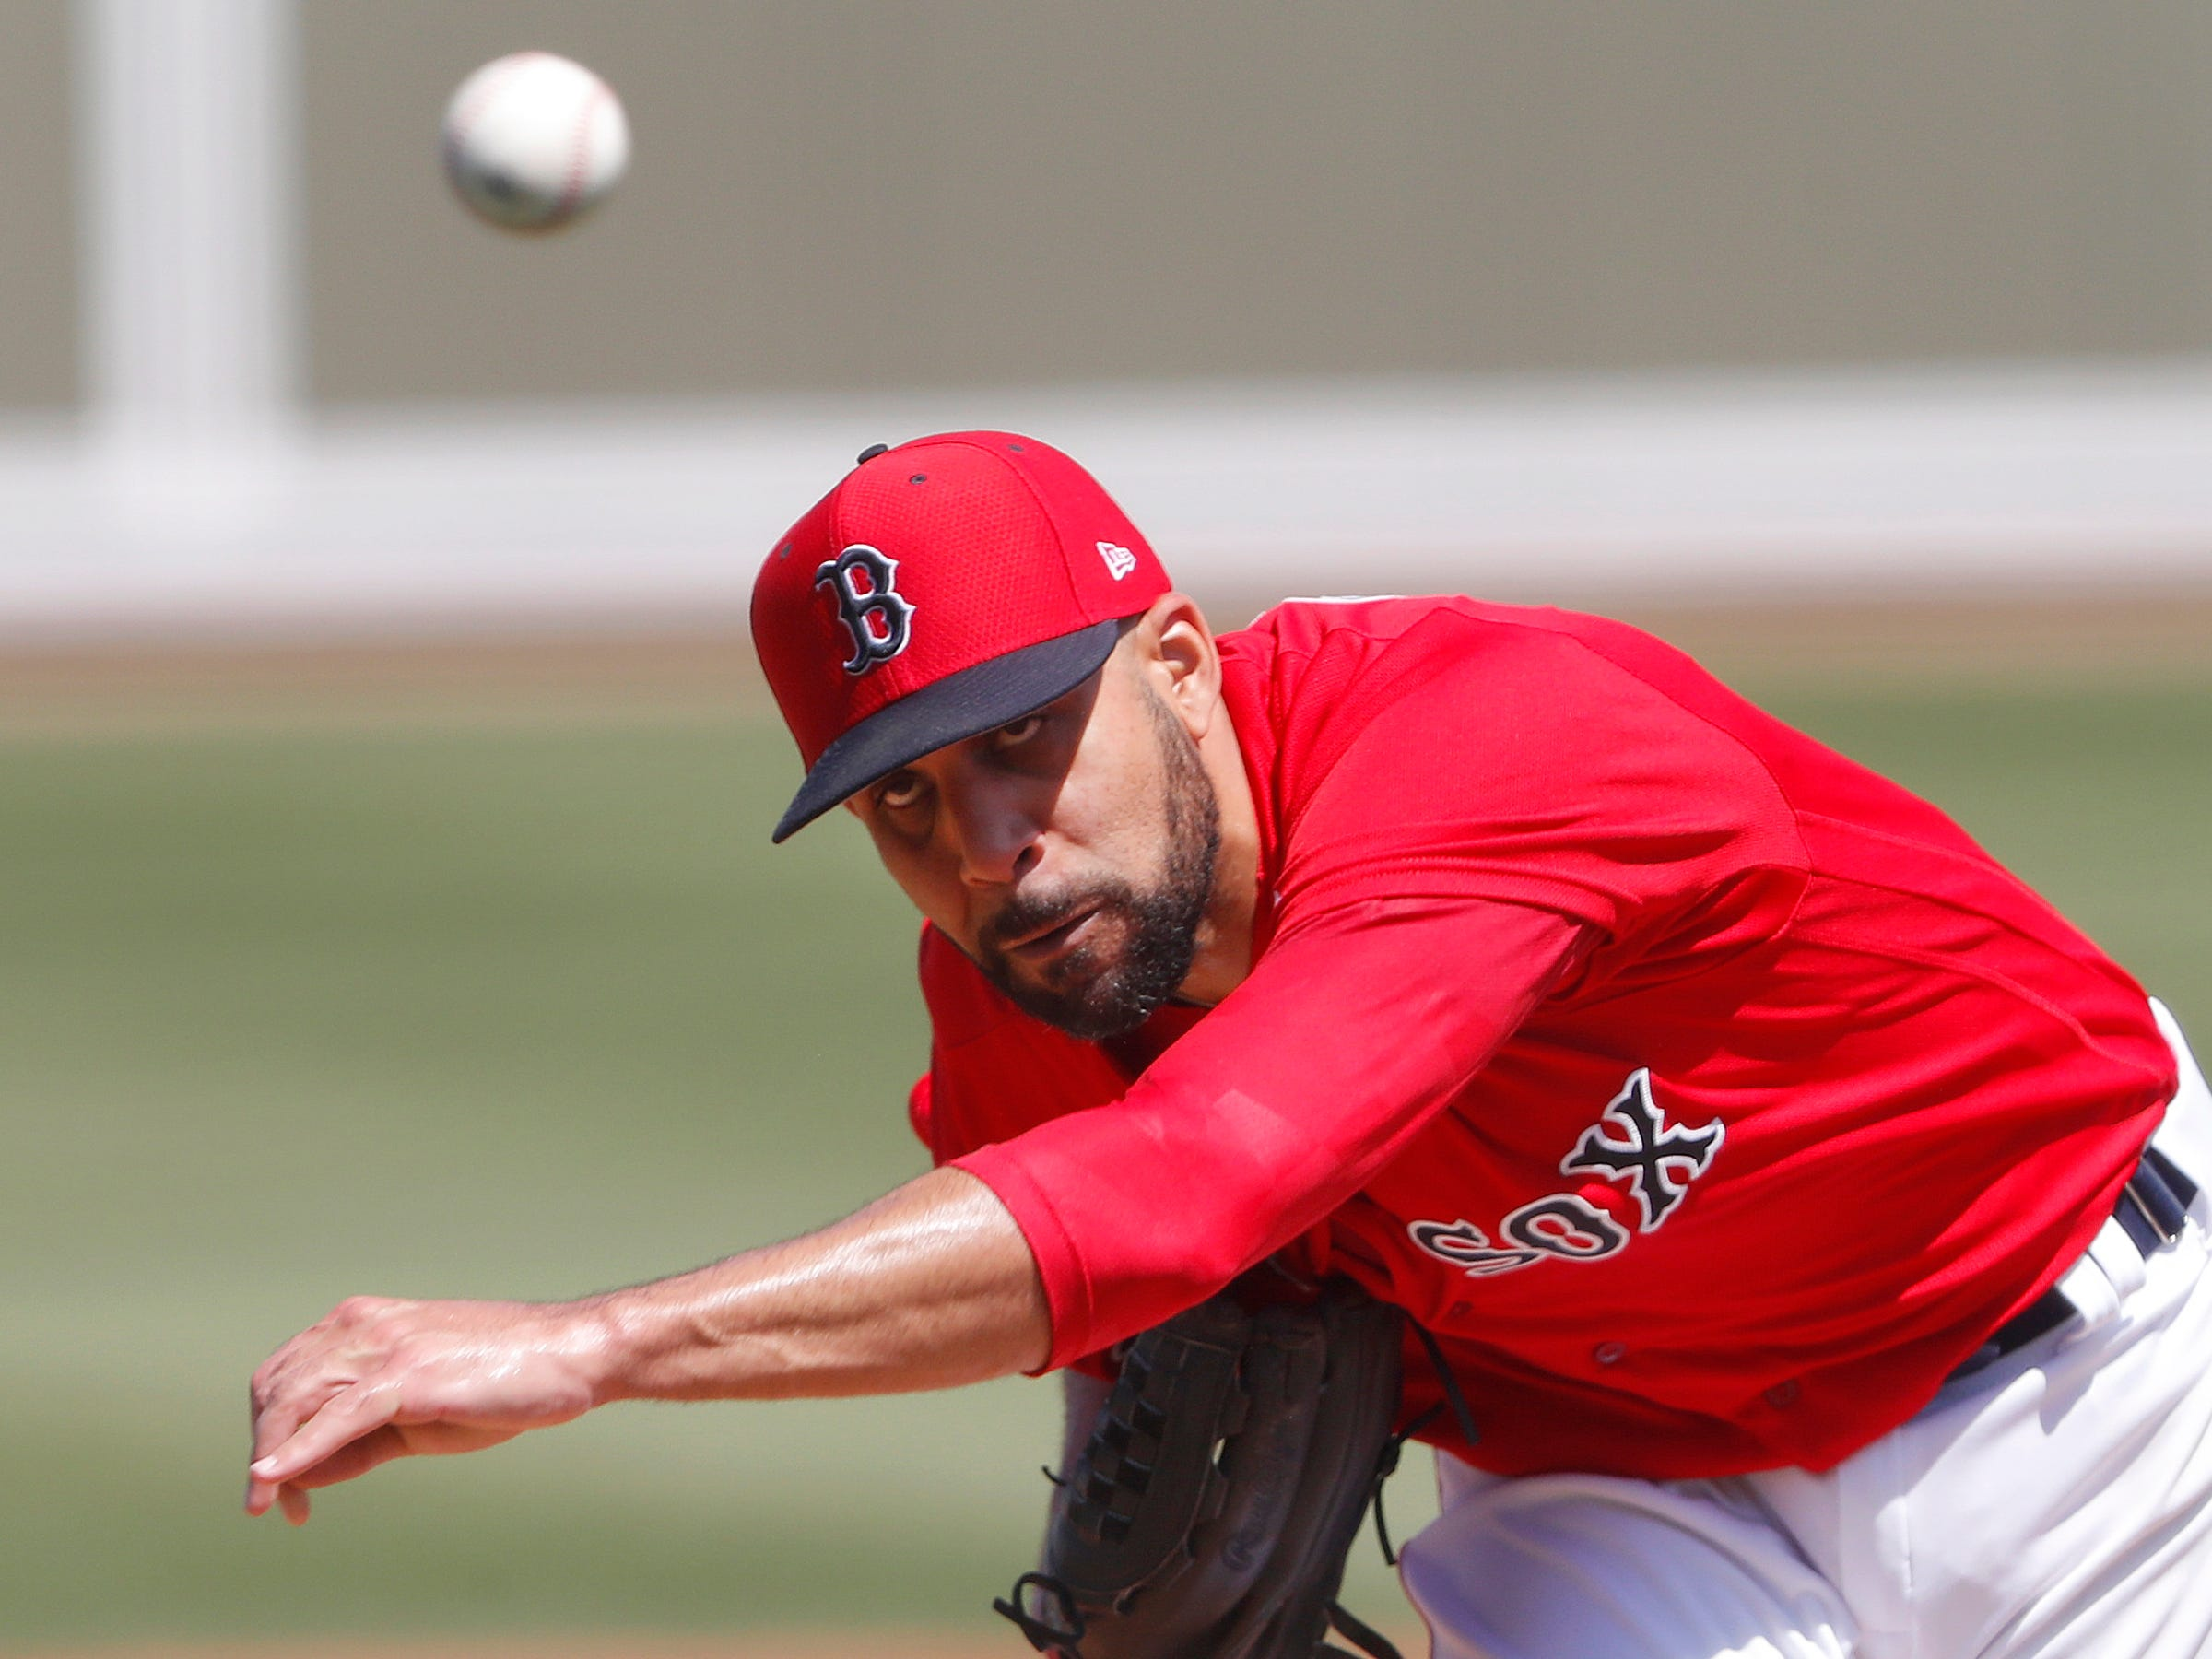 Red Sox starting pitcher David Price allowed two hits and two runs  in his three innings of work vs. the Tigers.